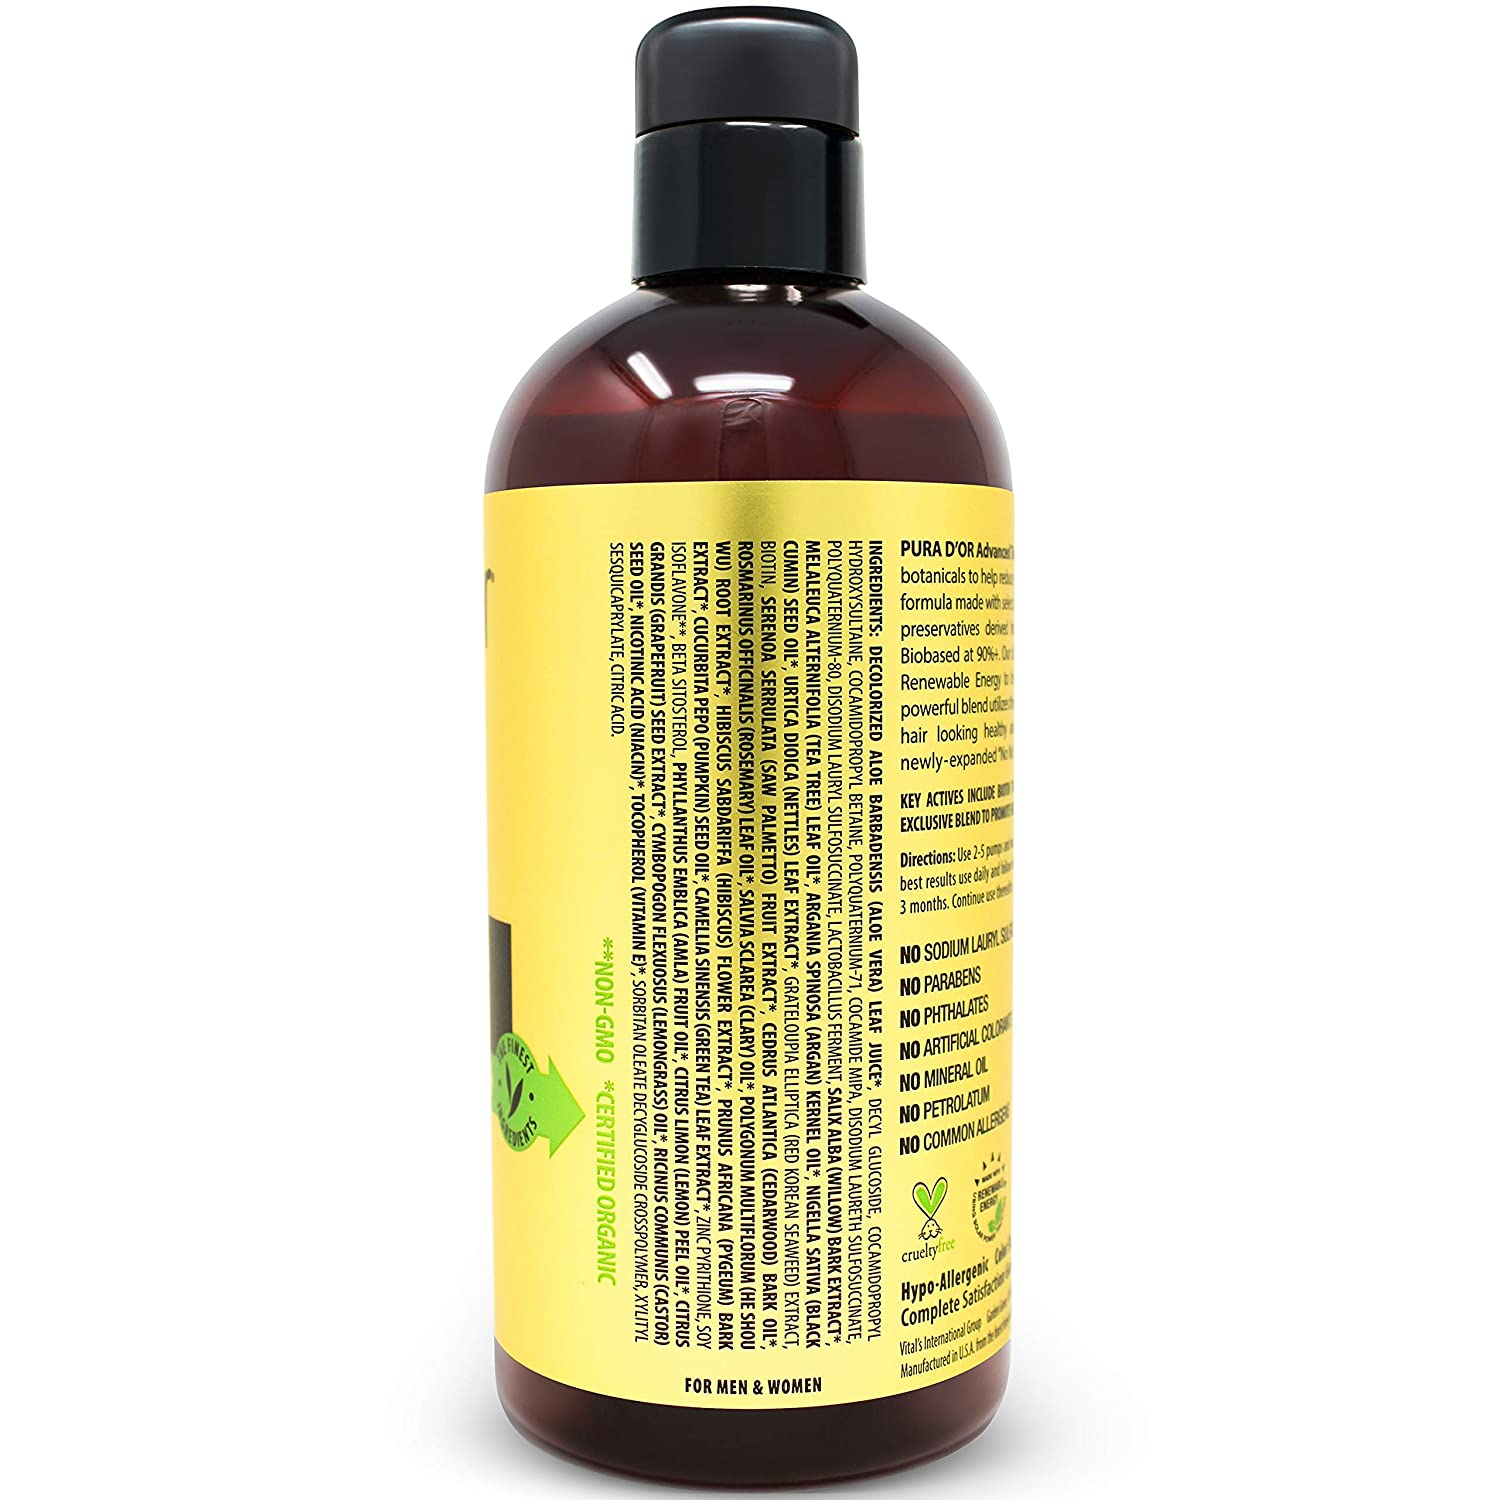 PURA D OR Advanced Therapy Shampoo Reduces Hair Thinning Increases Volume, Sulfate Free, Biotin Shampoo Infused with Argan Oil, Aloe Vera for All Hair Types, Men Women,16 Fl Oz